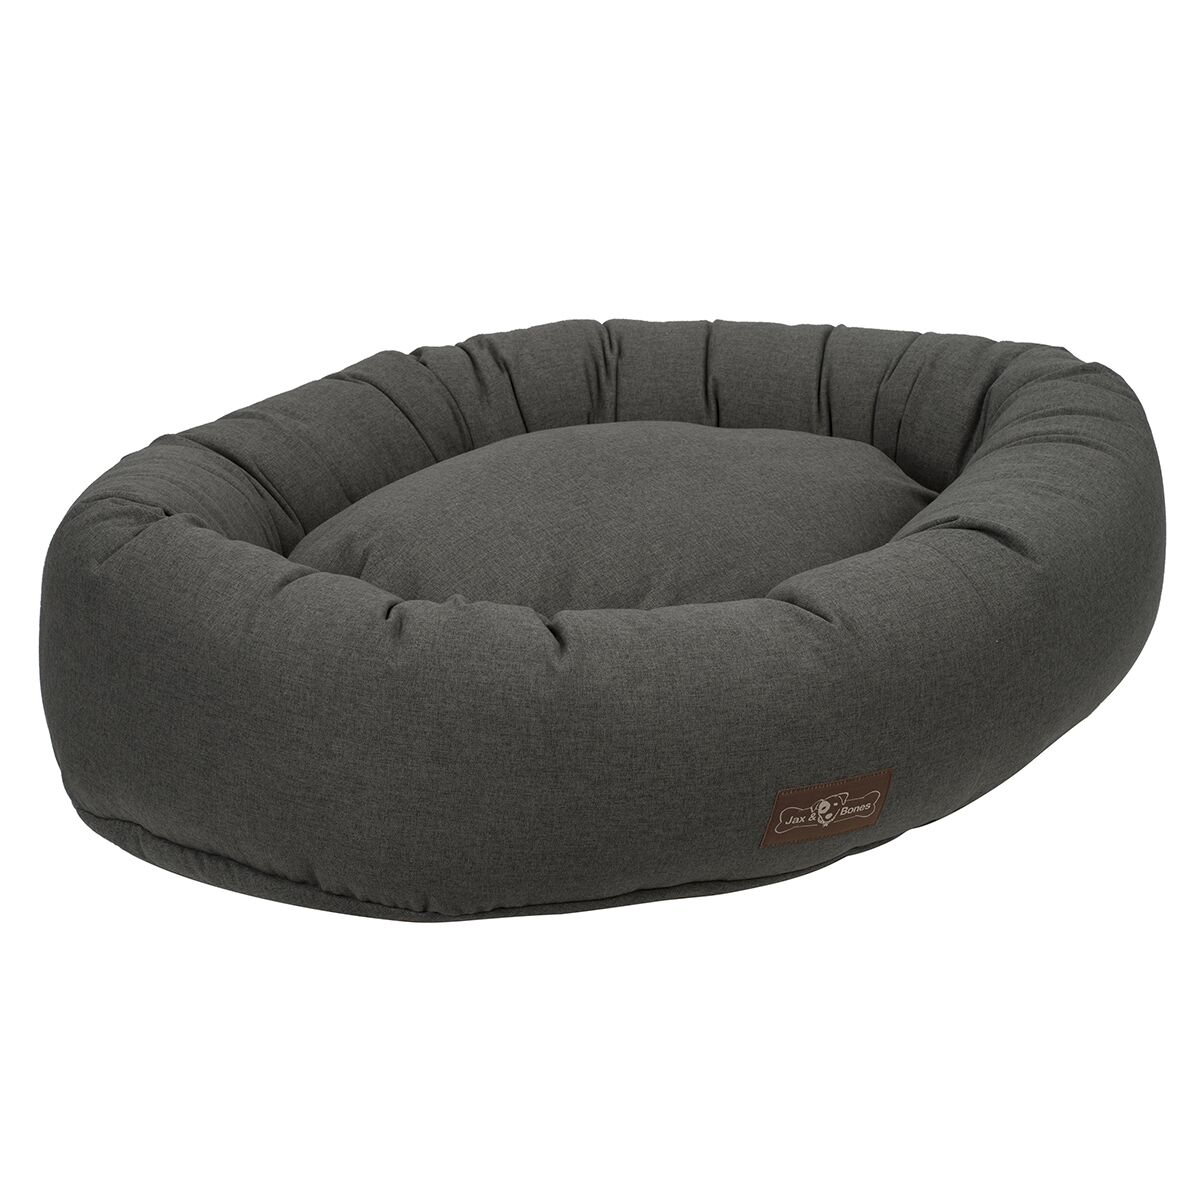 Standard Wool Blend Donut Bed Size: Large, Color: Licorice (Grey)